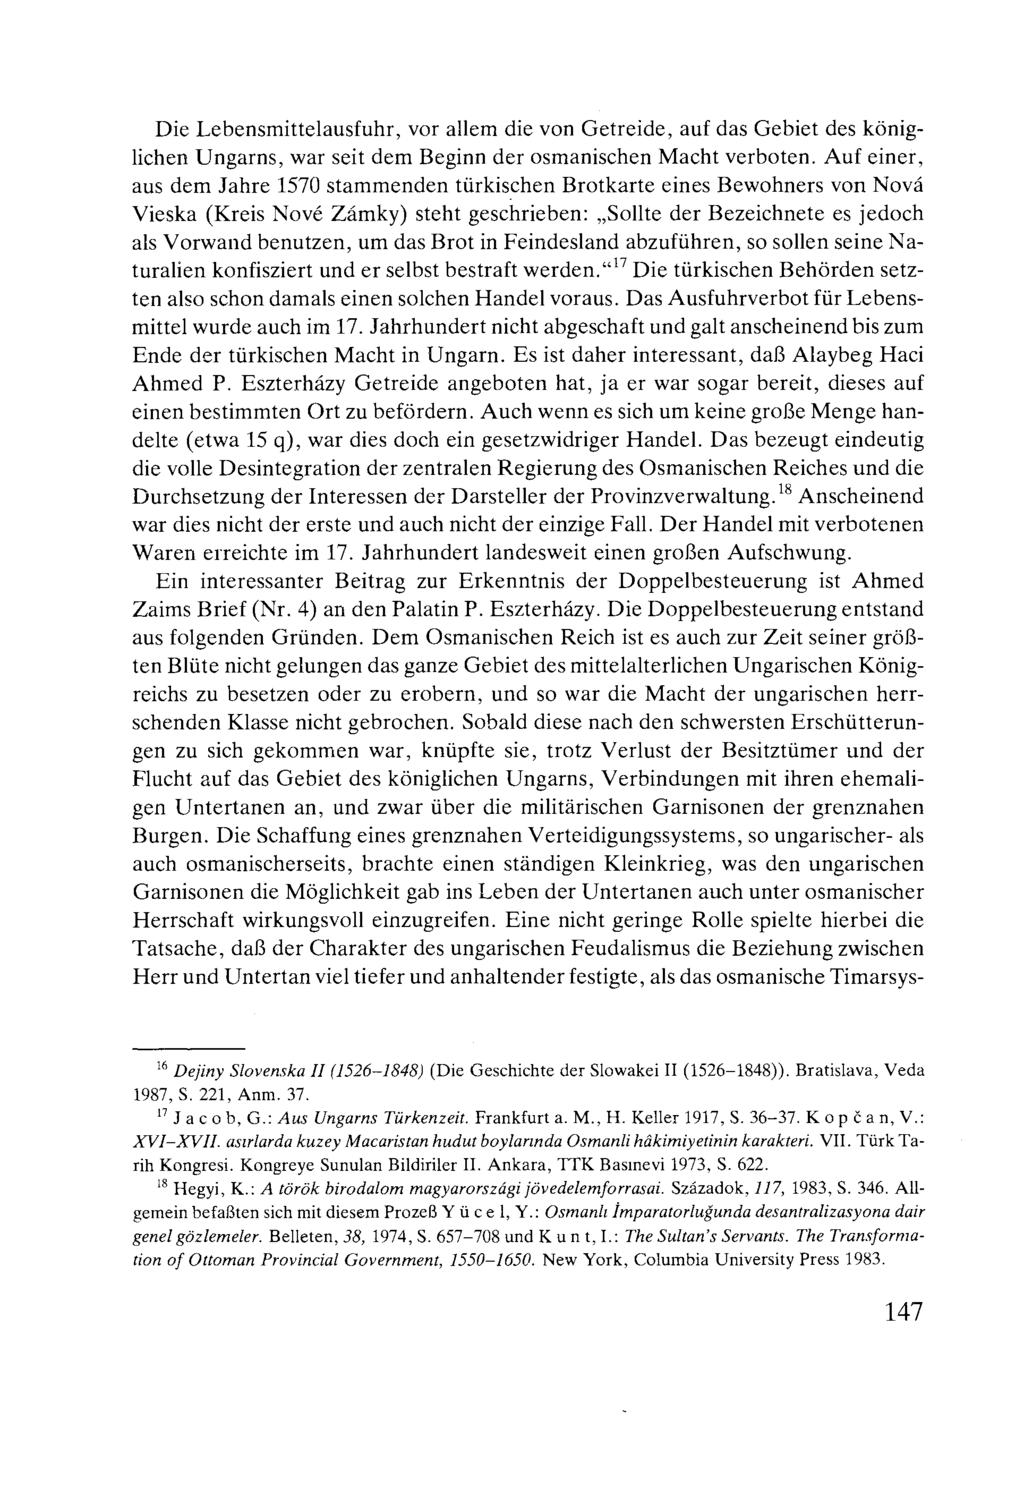 VEDA PUBLISHING HOUSE OF THE SLOVAK ACADEMY OF SCIENCES - PDF